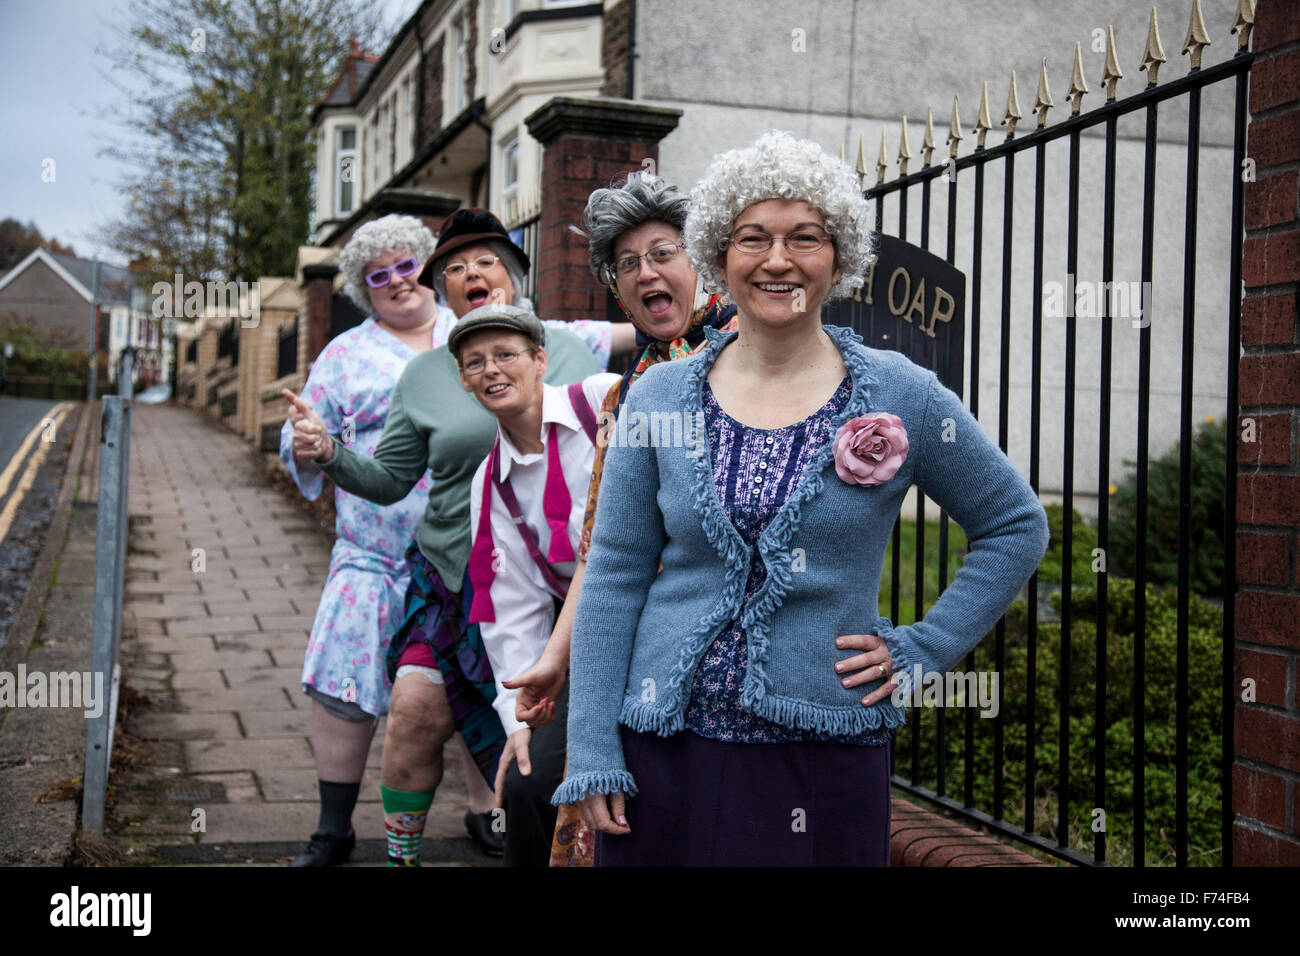 UNITED KINGDOM, WALES; 16 November 2015. Women dressed as old ladies pose in front of OAP Welfare Hall in Llanbradach - Stock Image